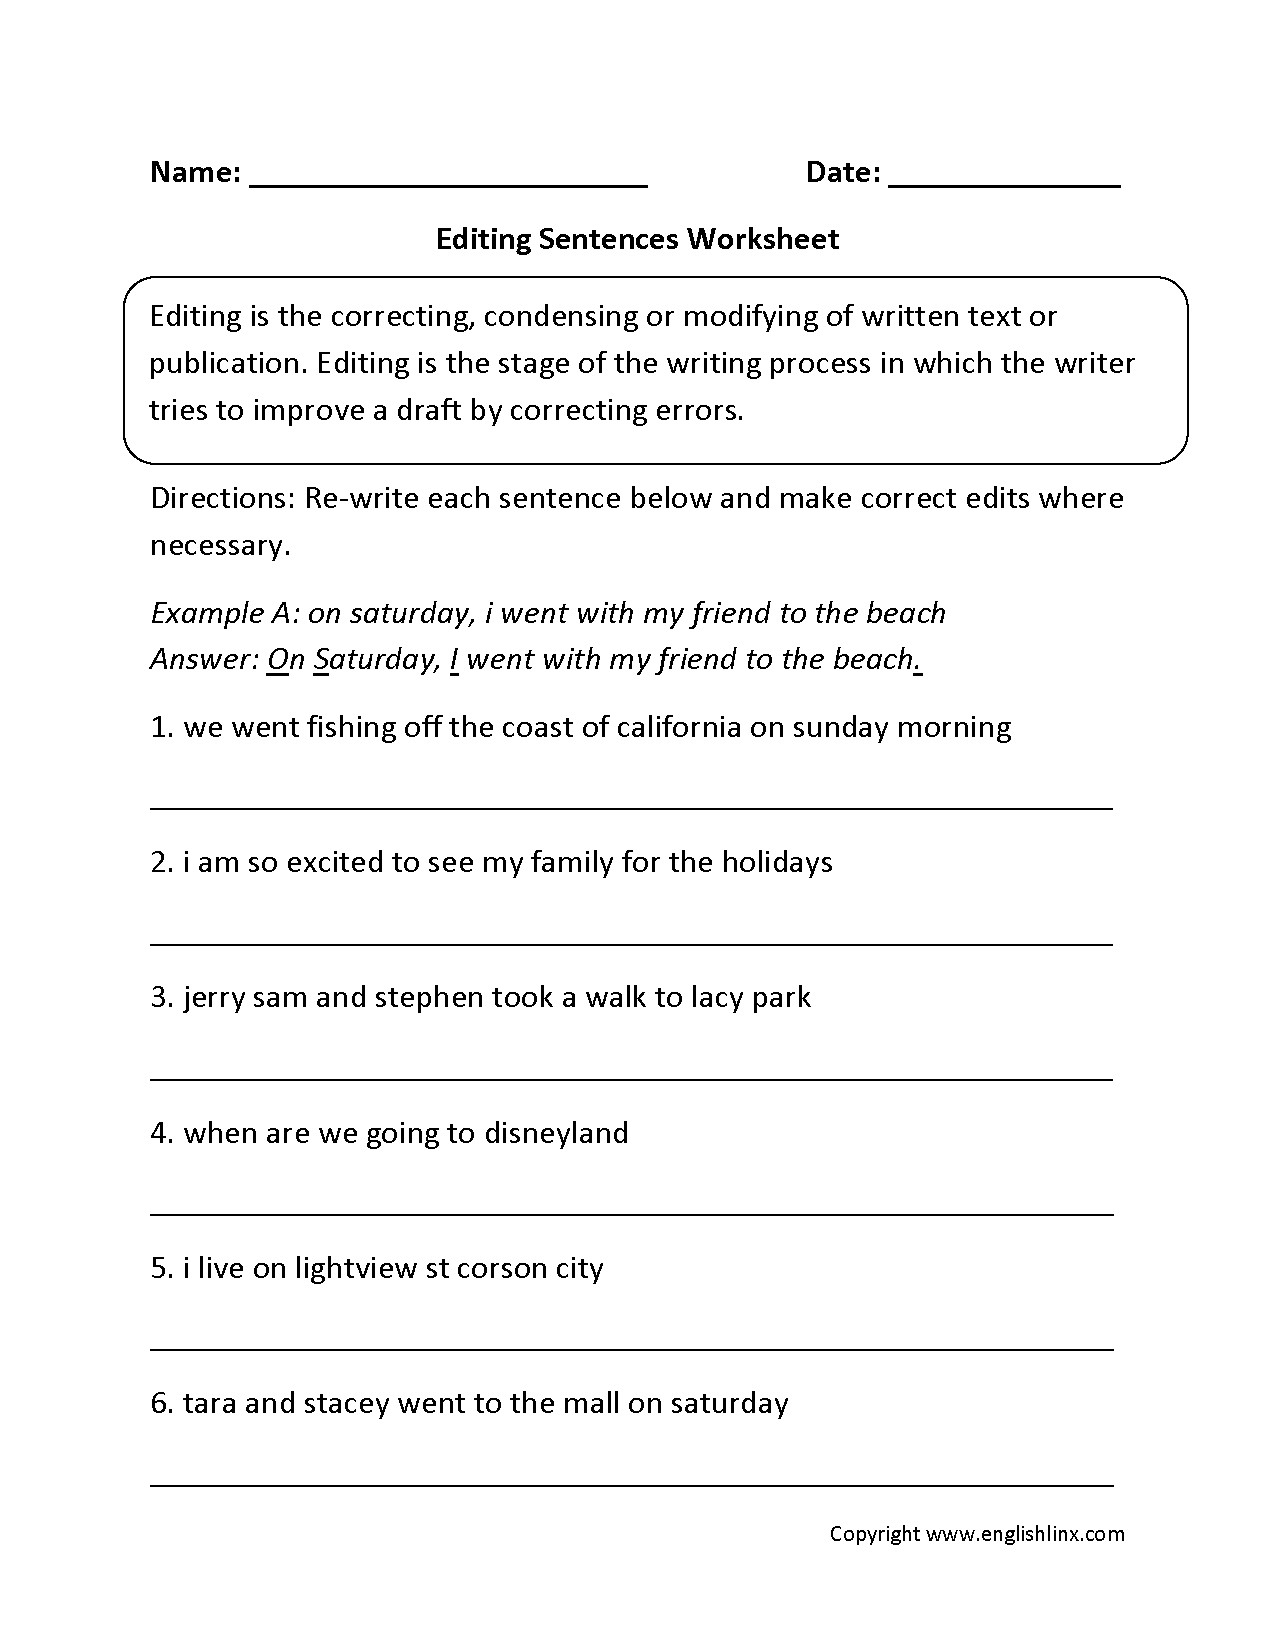 Editing Worksheet Middle School Editing Worksheet Sentece